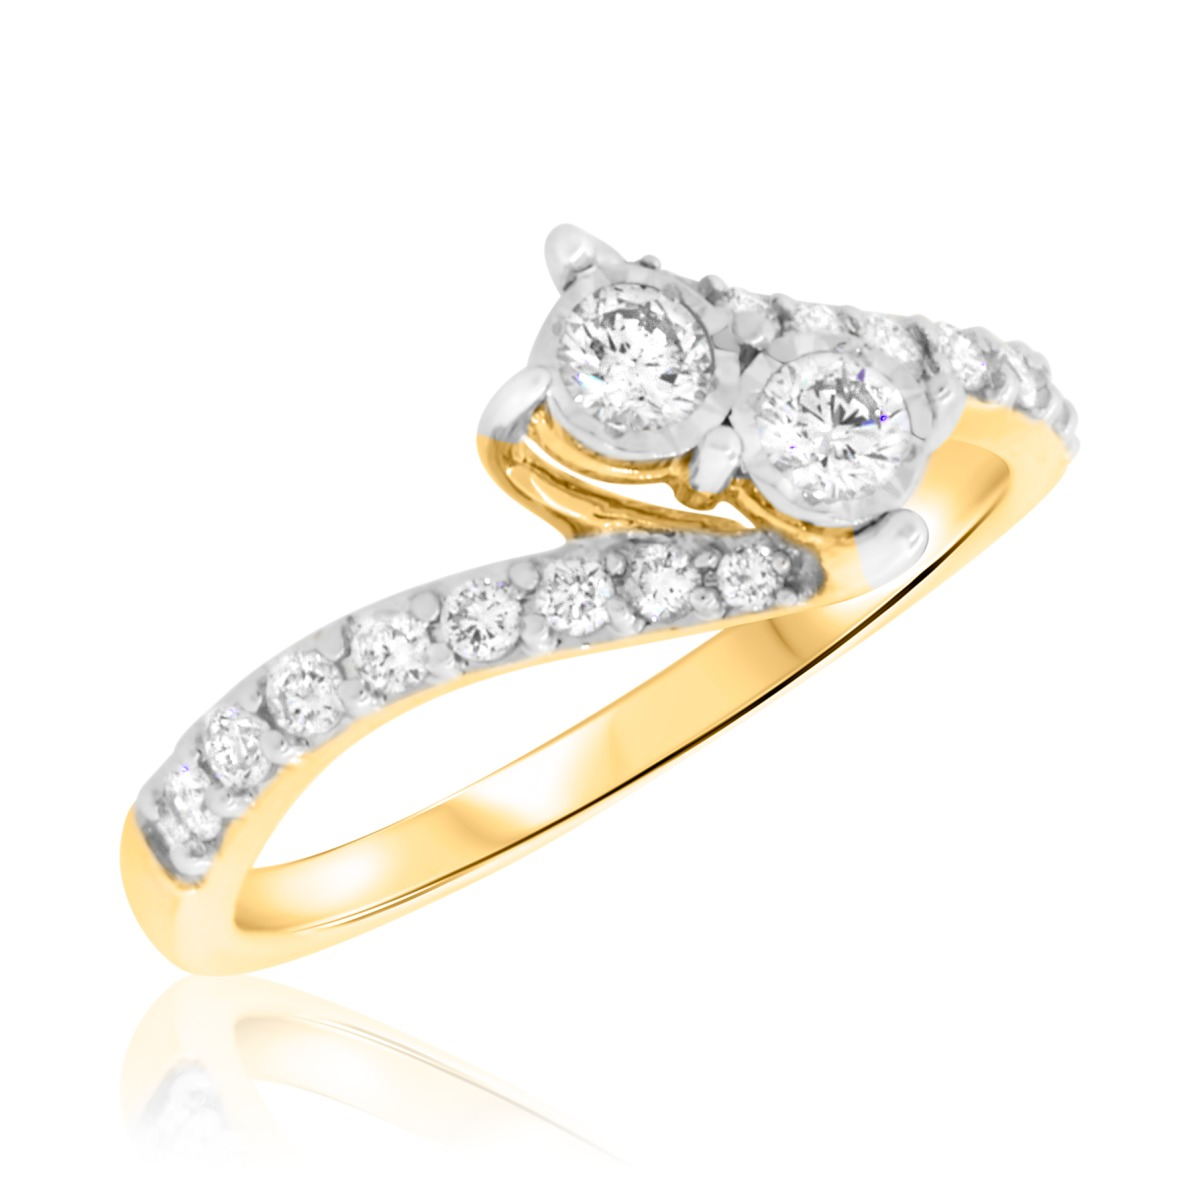 1/2 Carat T.W. Round Cut Diamond Two Stone Ring 14K Yellow Gold